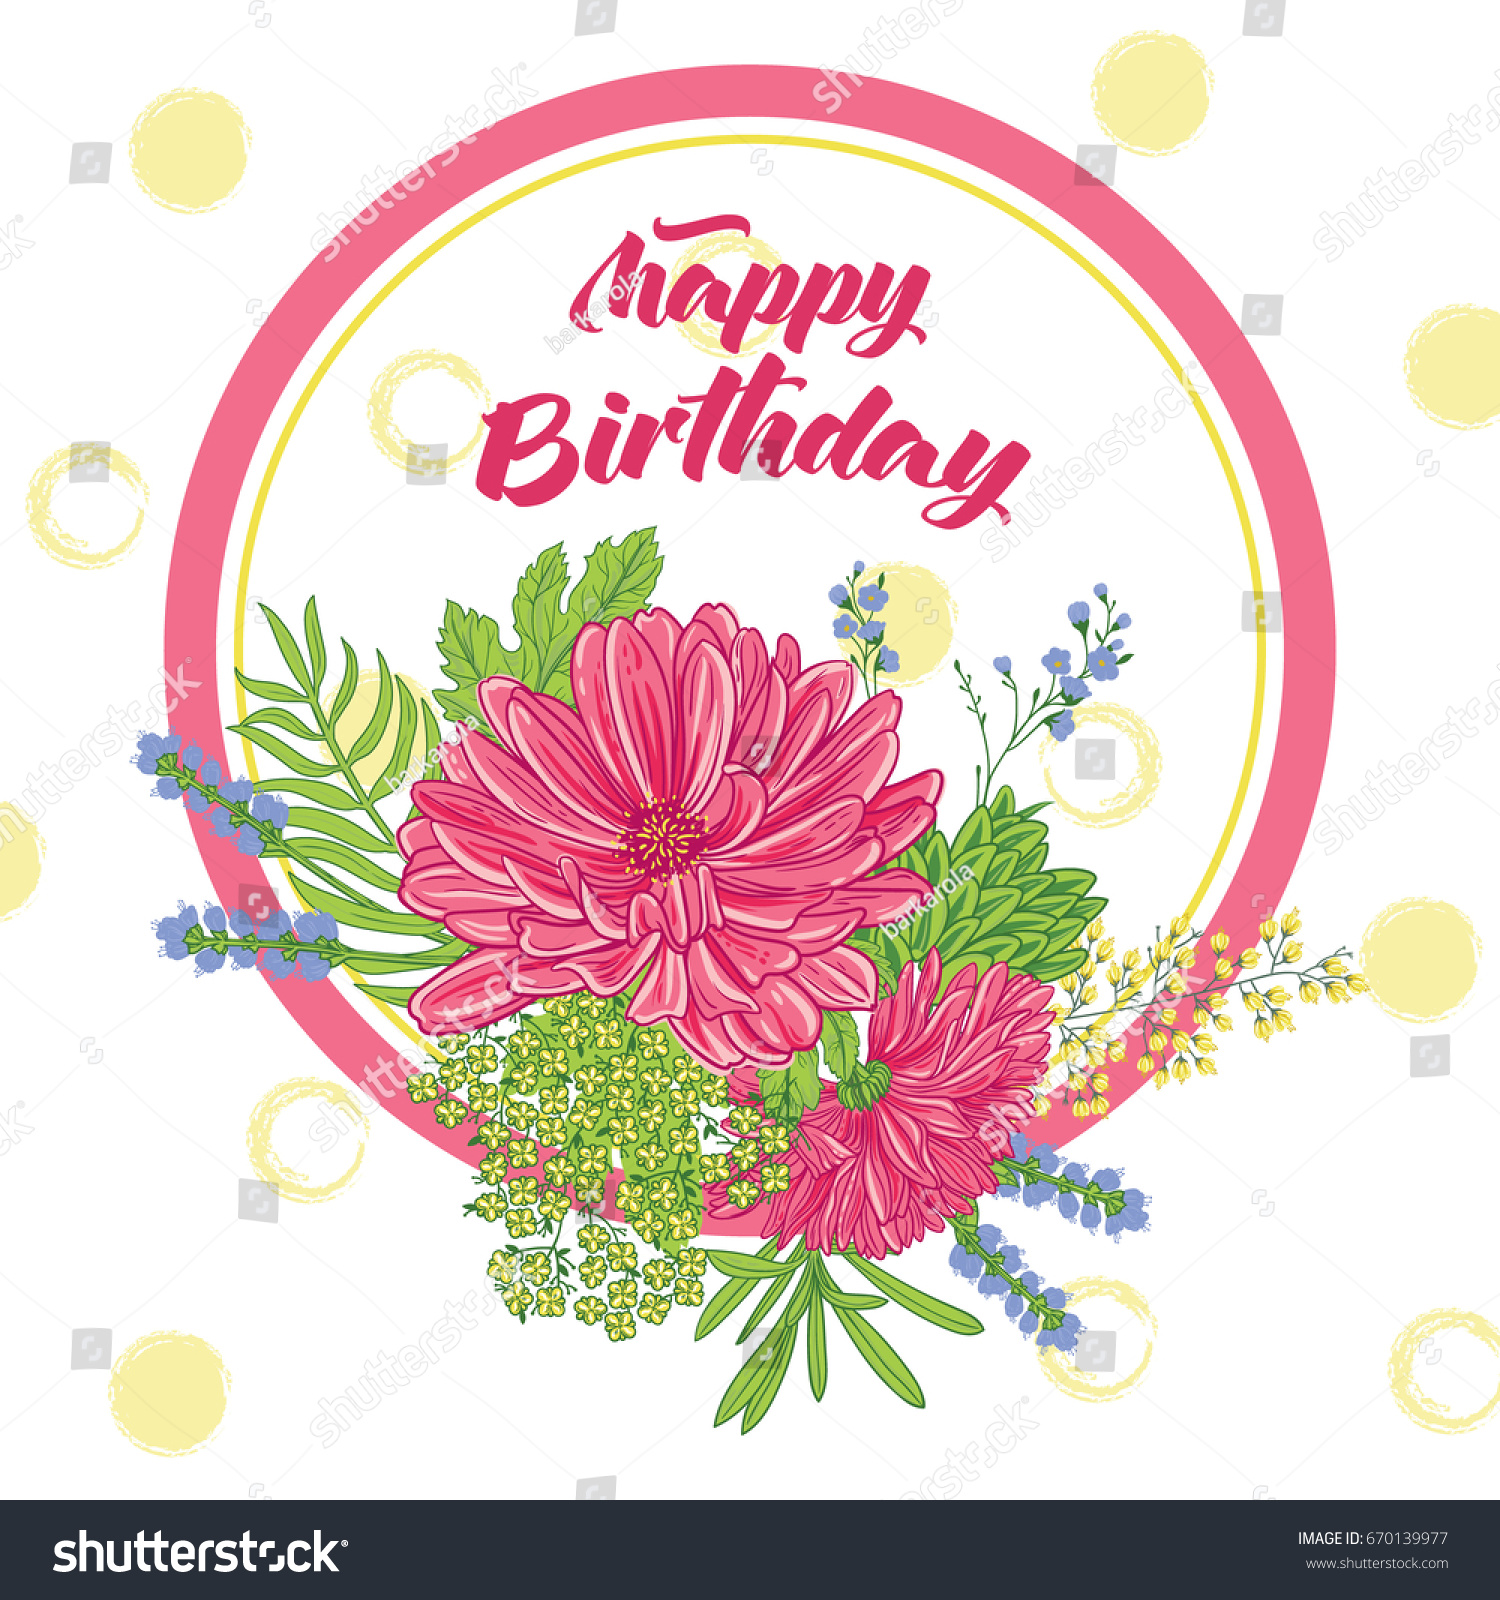 Happy birthday card aster flowers hand stock vector royalty free happy birthday card with an aster flowers and hand drawn brush background floral composition izmirmasajfo